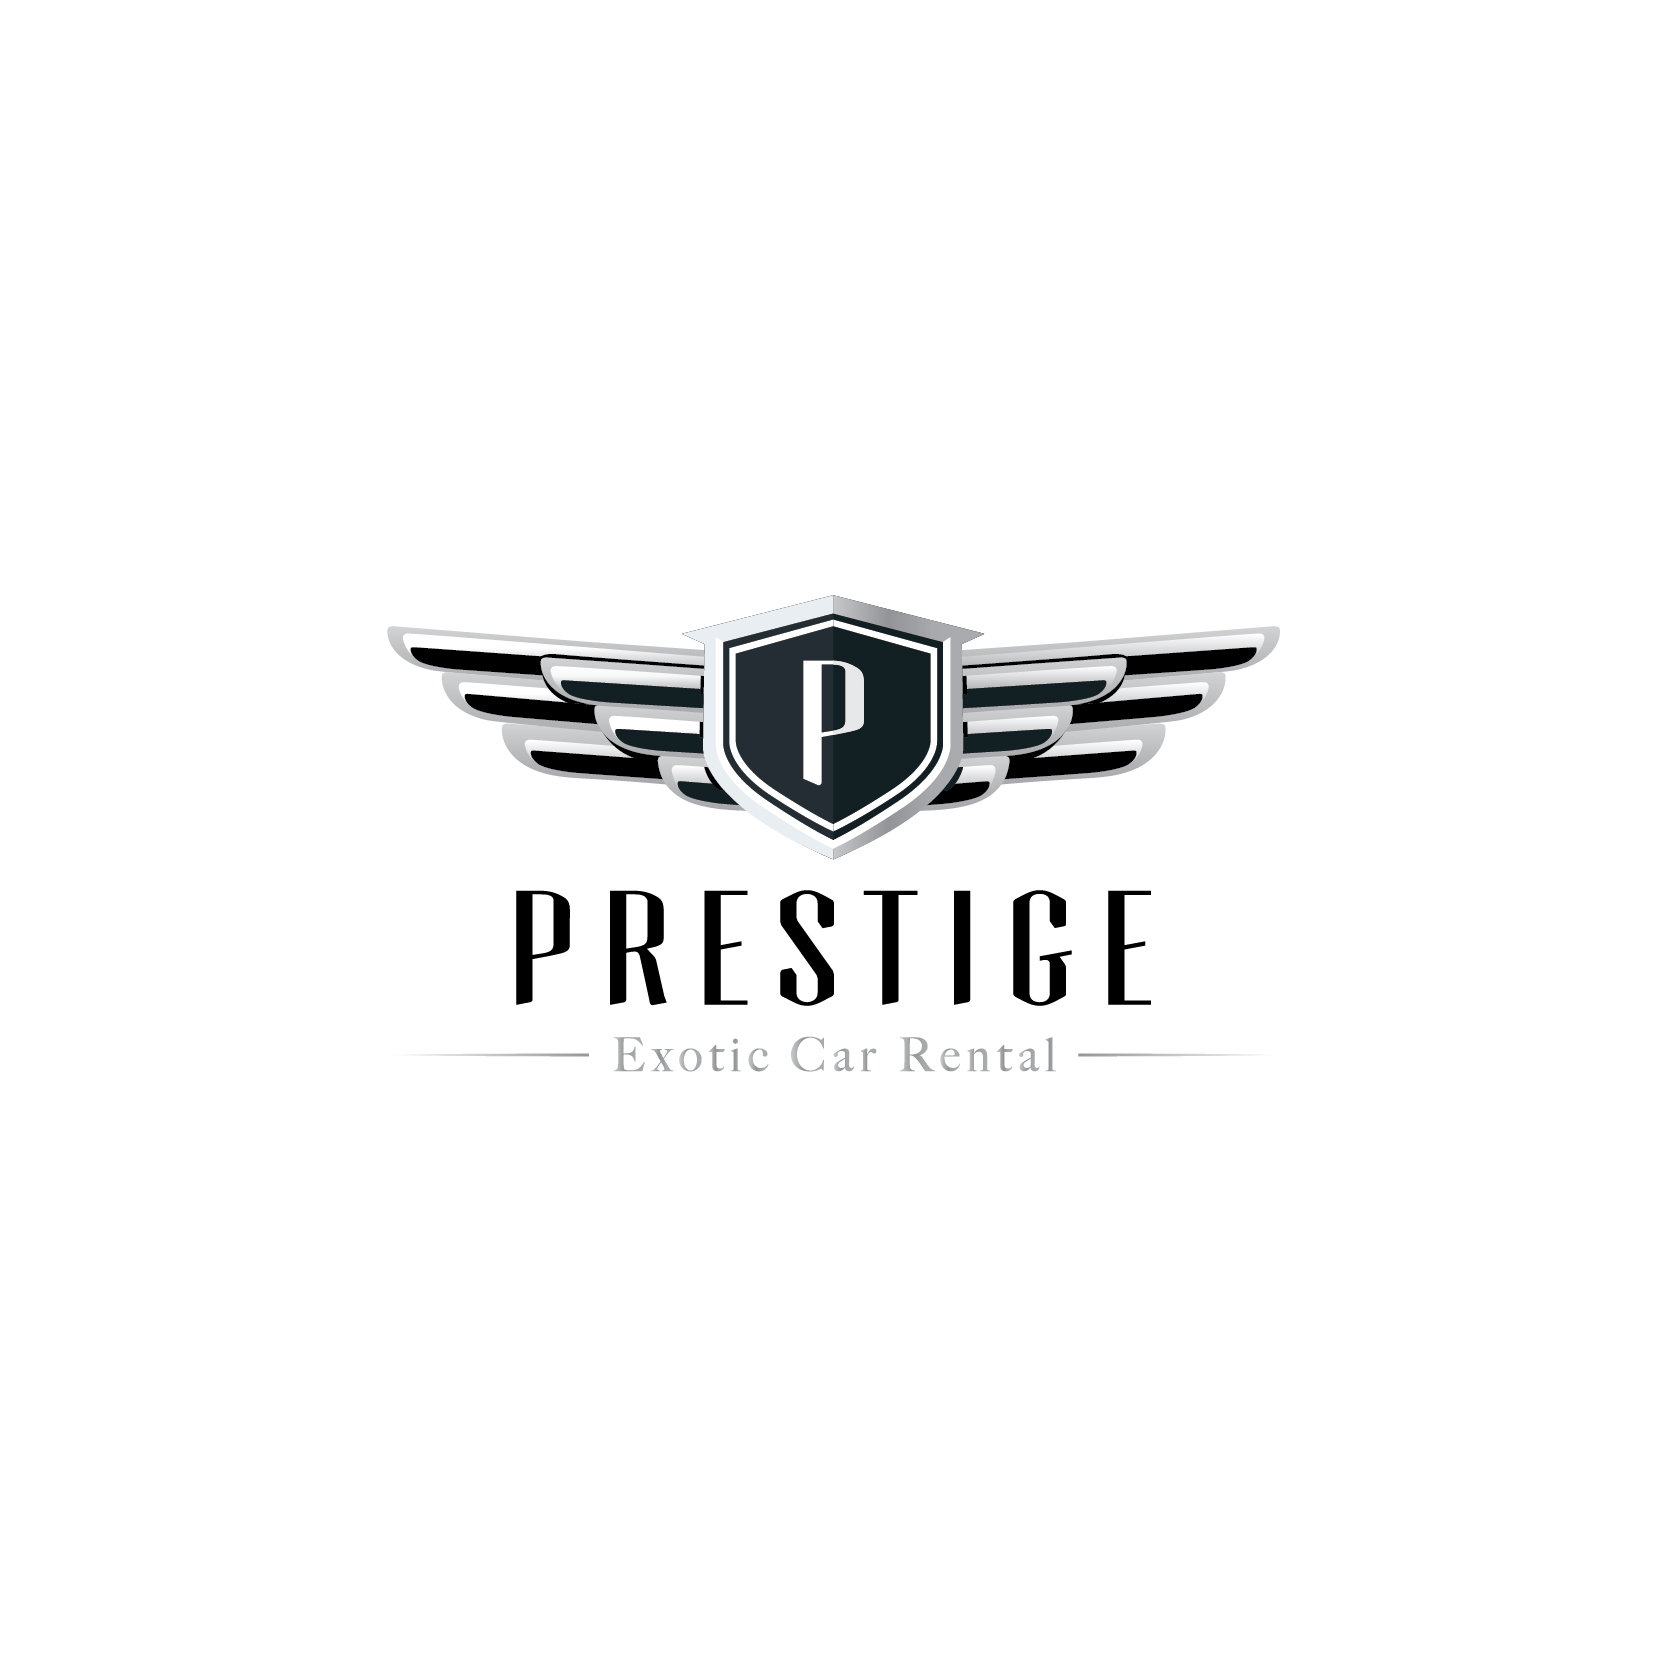 Prestige Exotic Car Rental